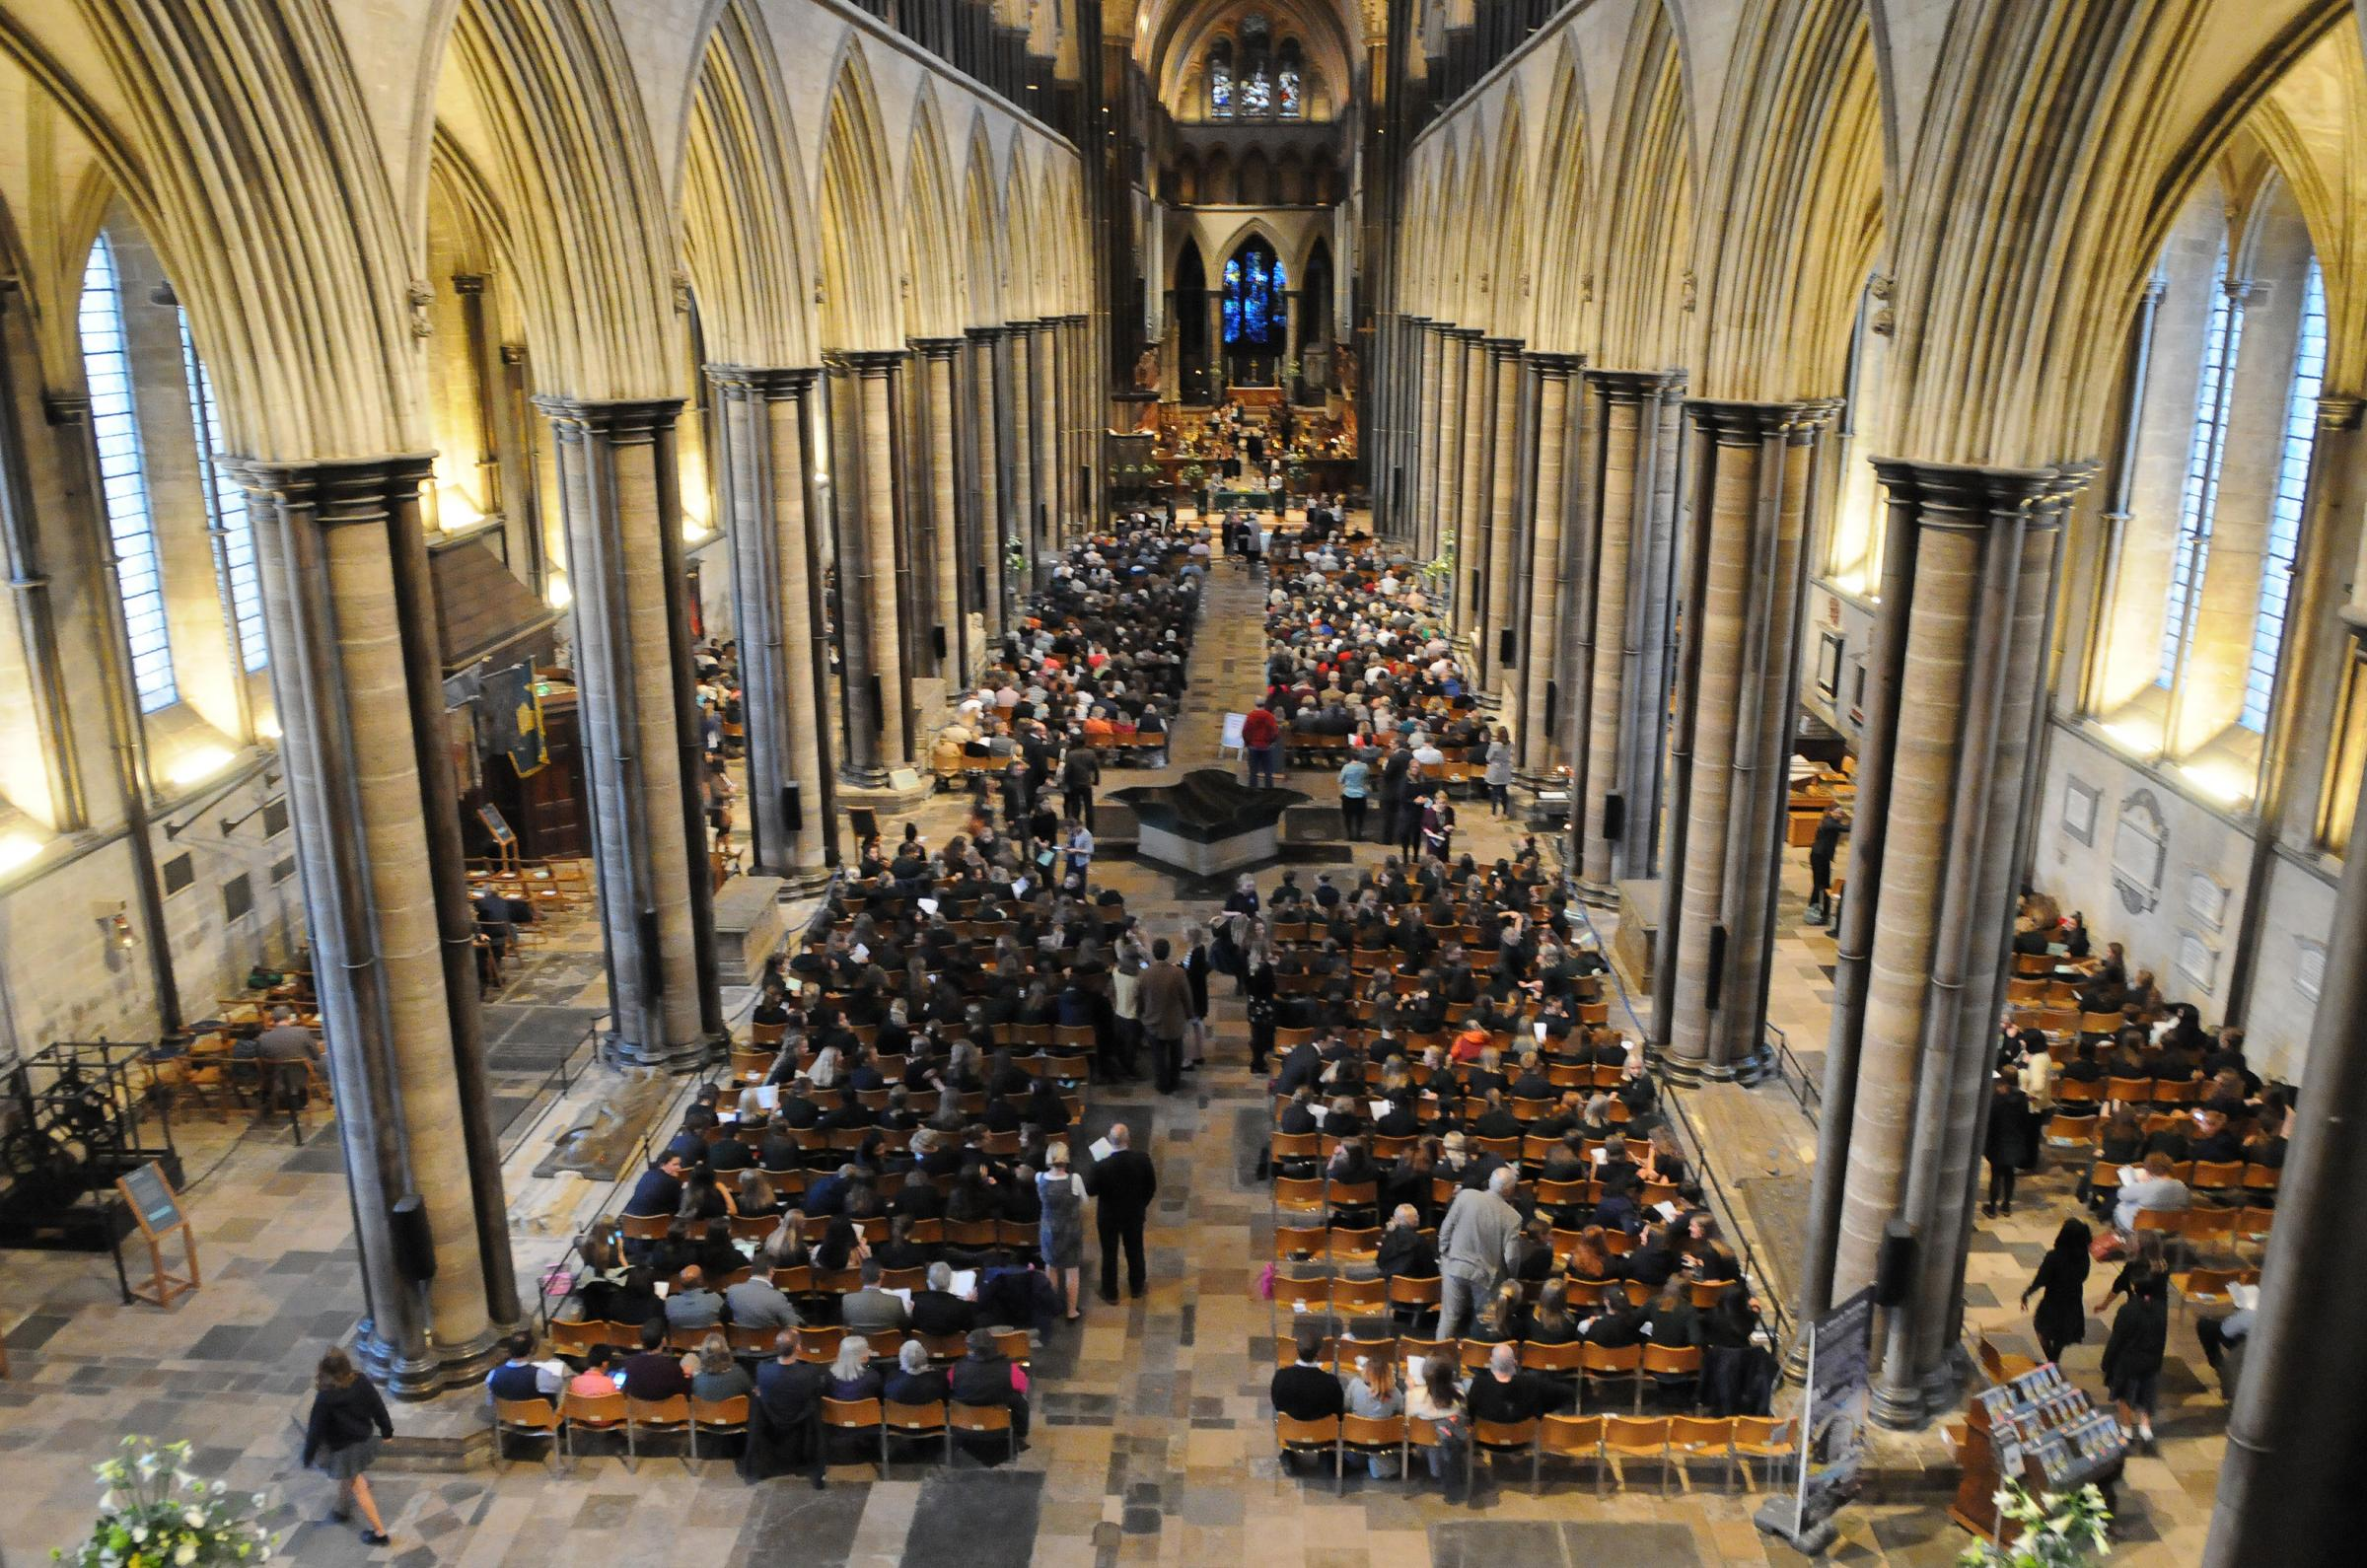 South Wilts School speech day at Salisbury Cathedral DC8778P16 Picture by Tom Gregory.